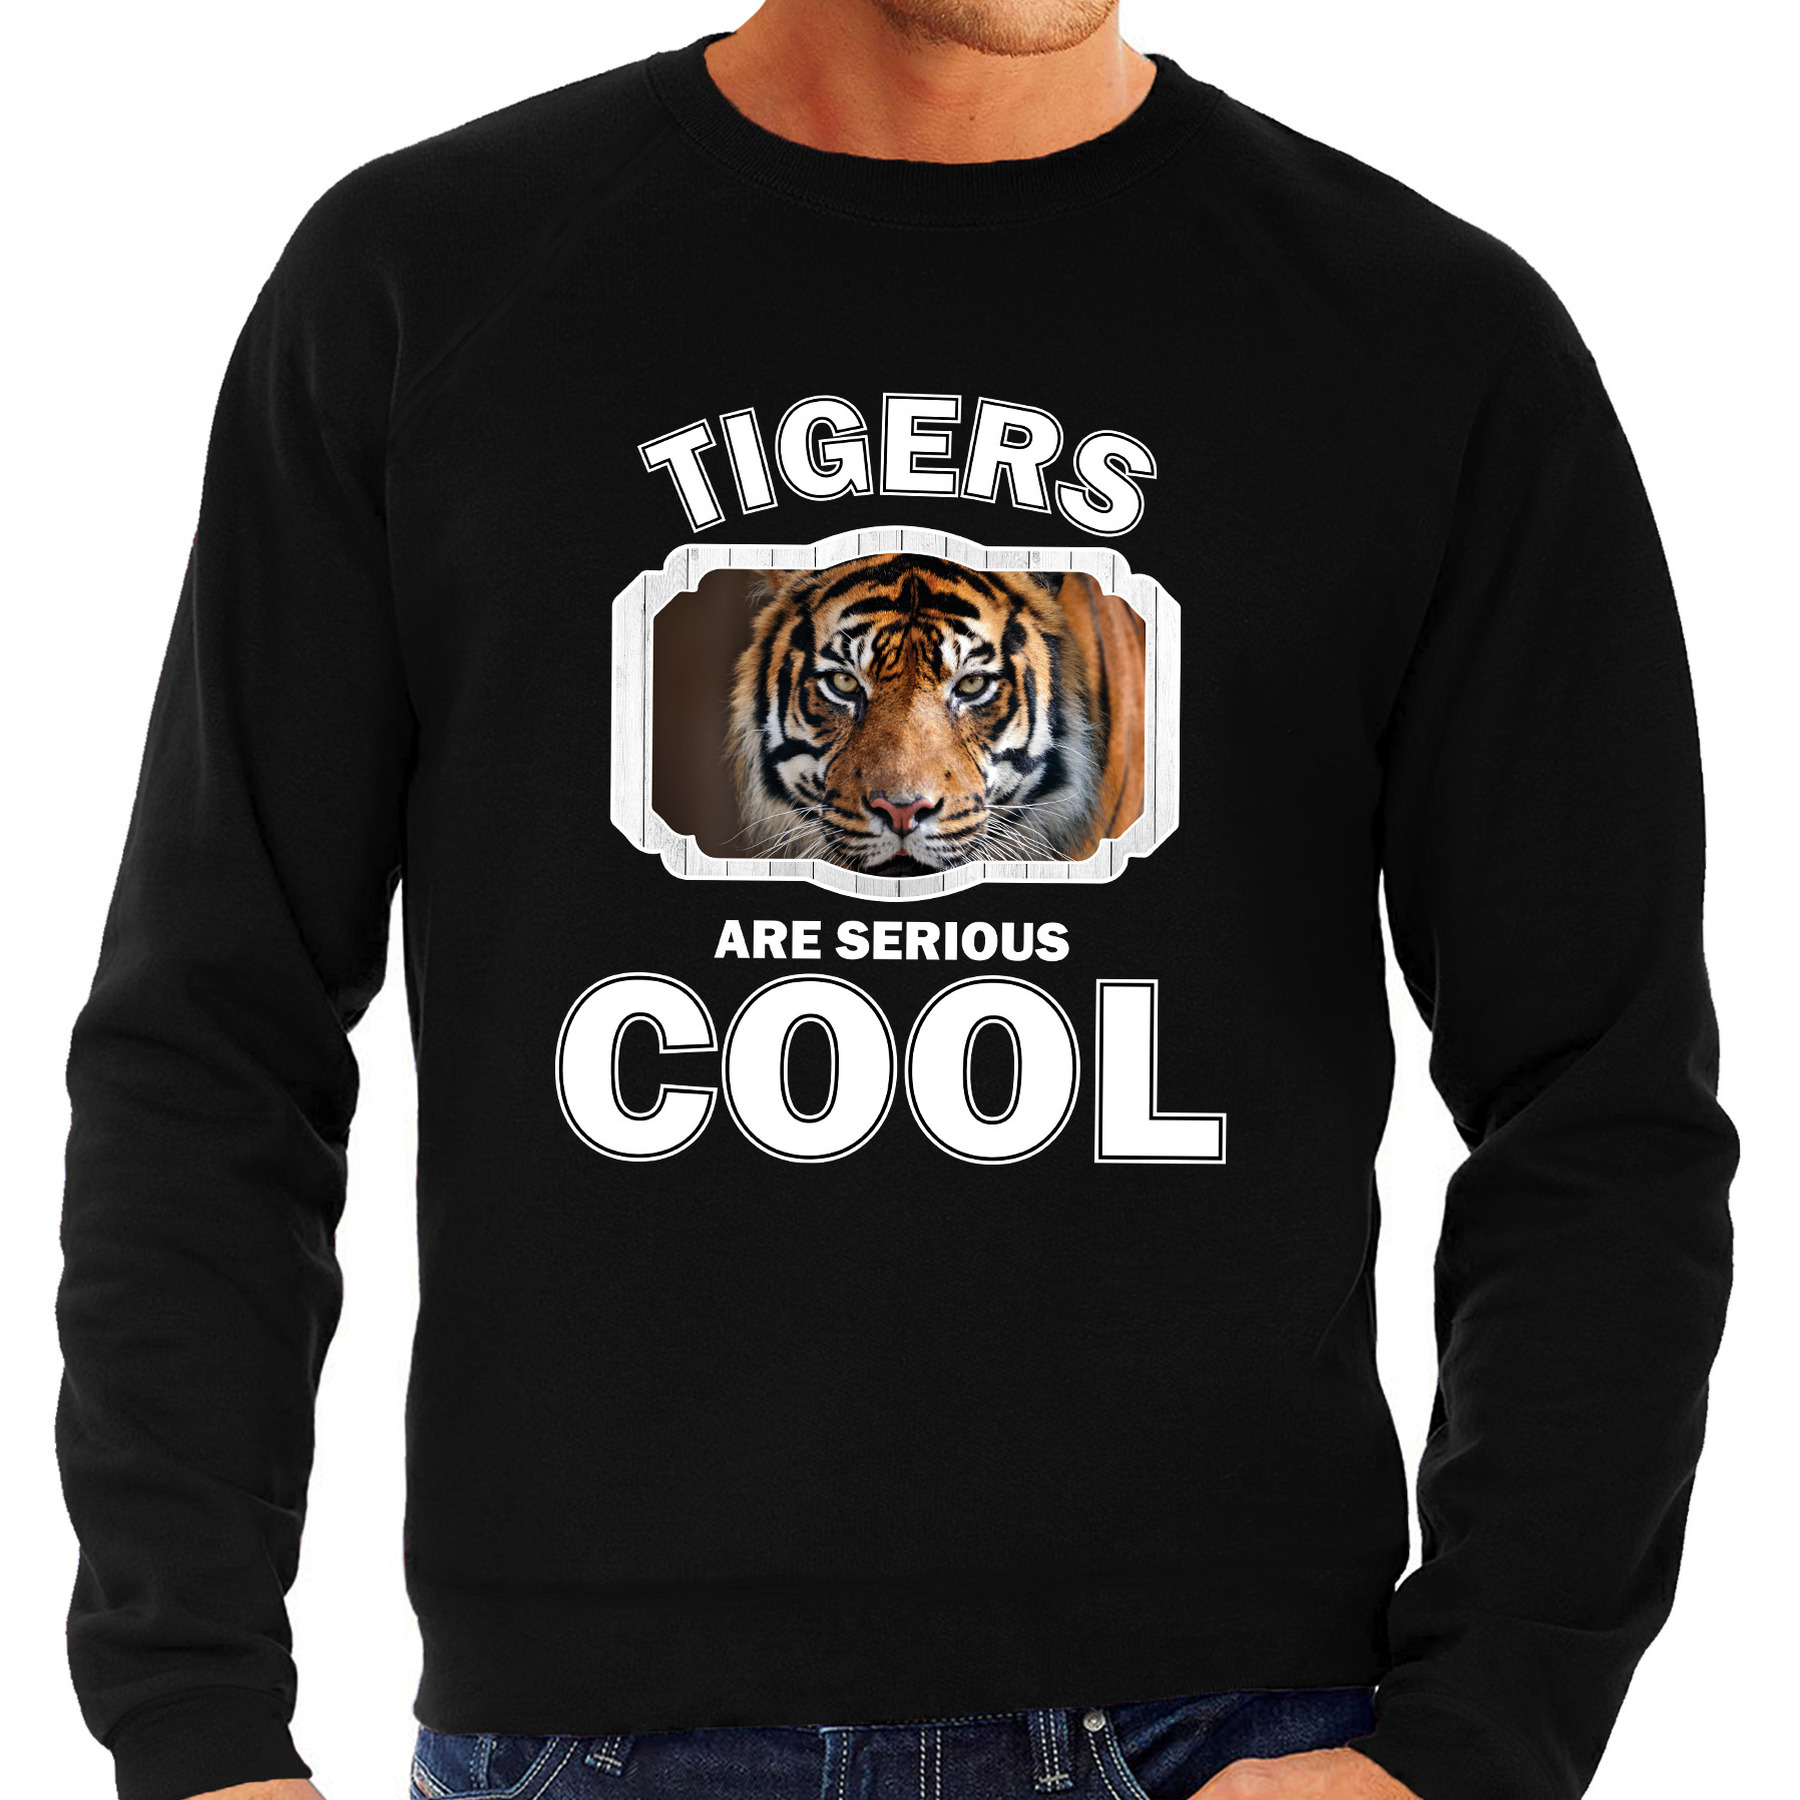 Sweater tigers are serious cool zwart heren - tijgers/ tijger trui